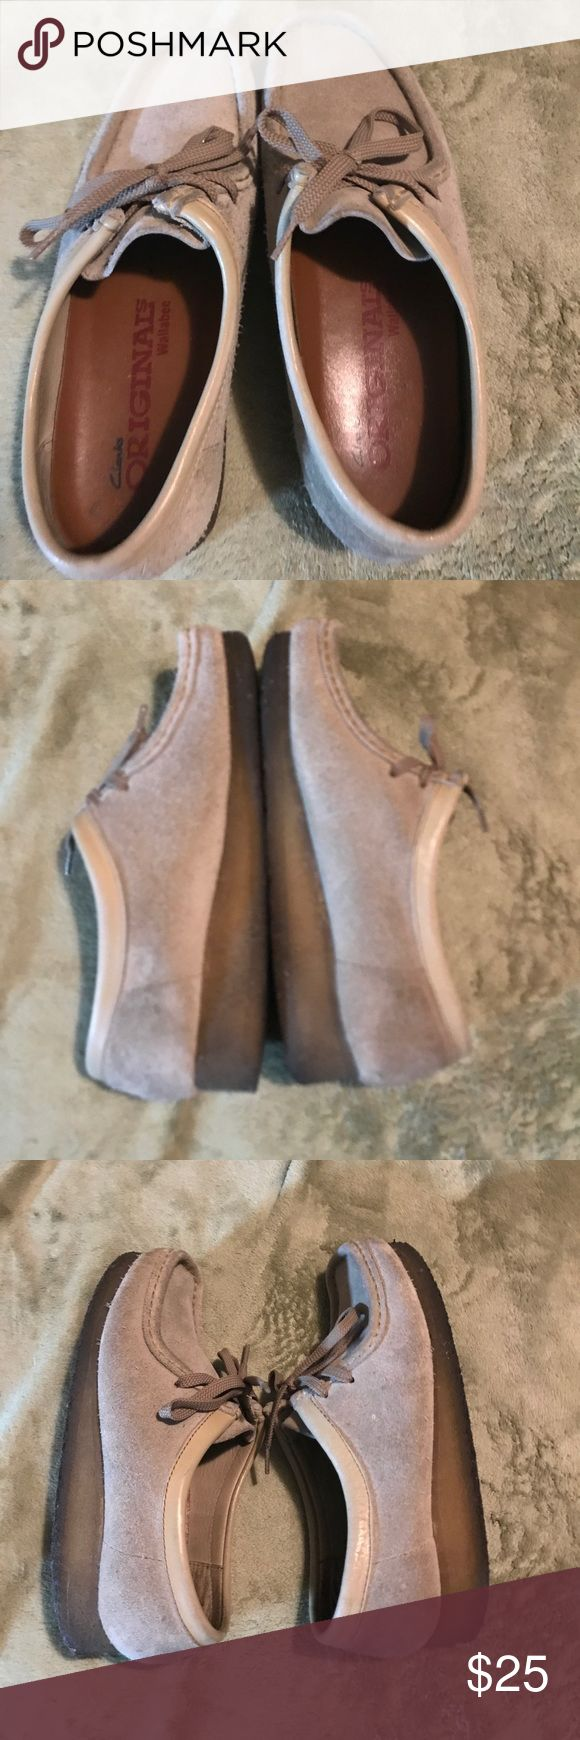 Clarks Wallabees Suede Suede Clarks Wallabees in women's size 7. Offers accepted. Discounted bundles. Clarks Shoes Flats & Loafers